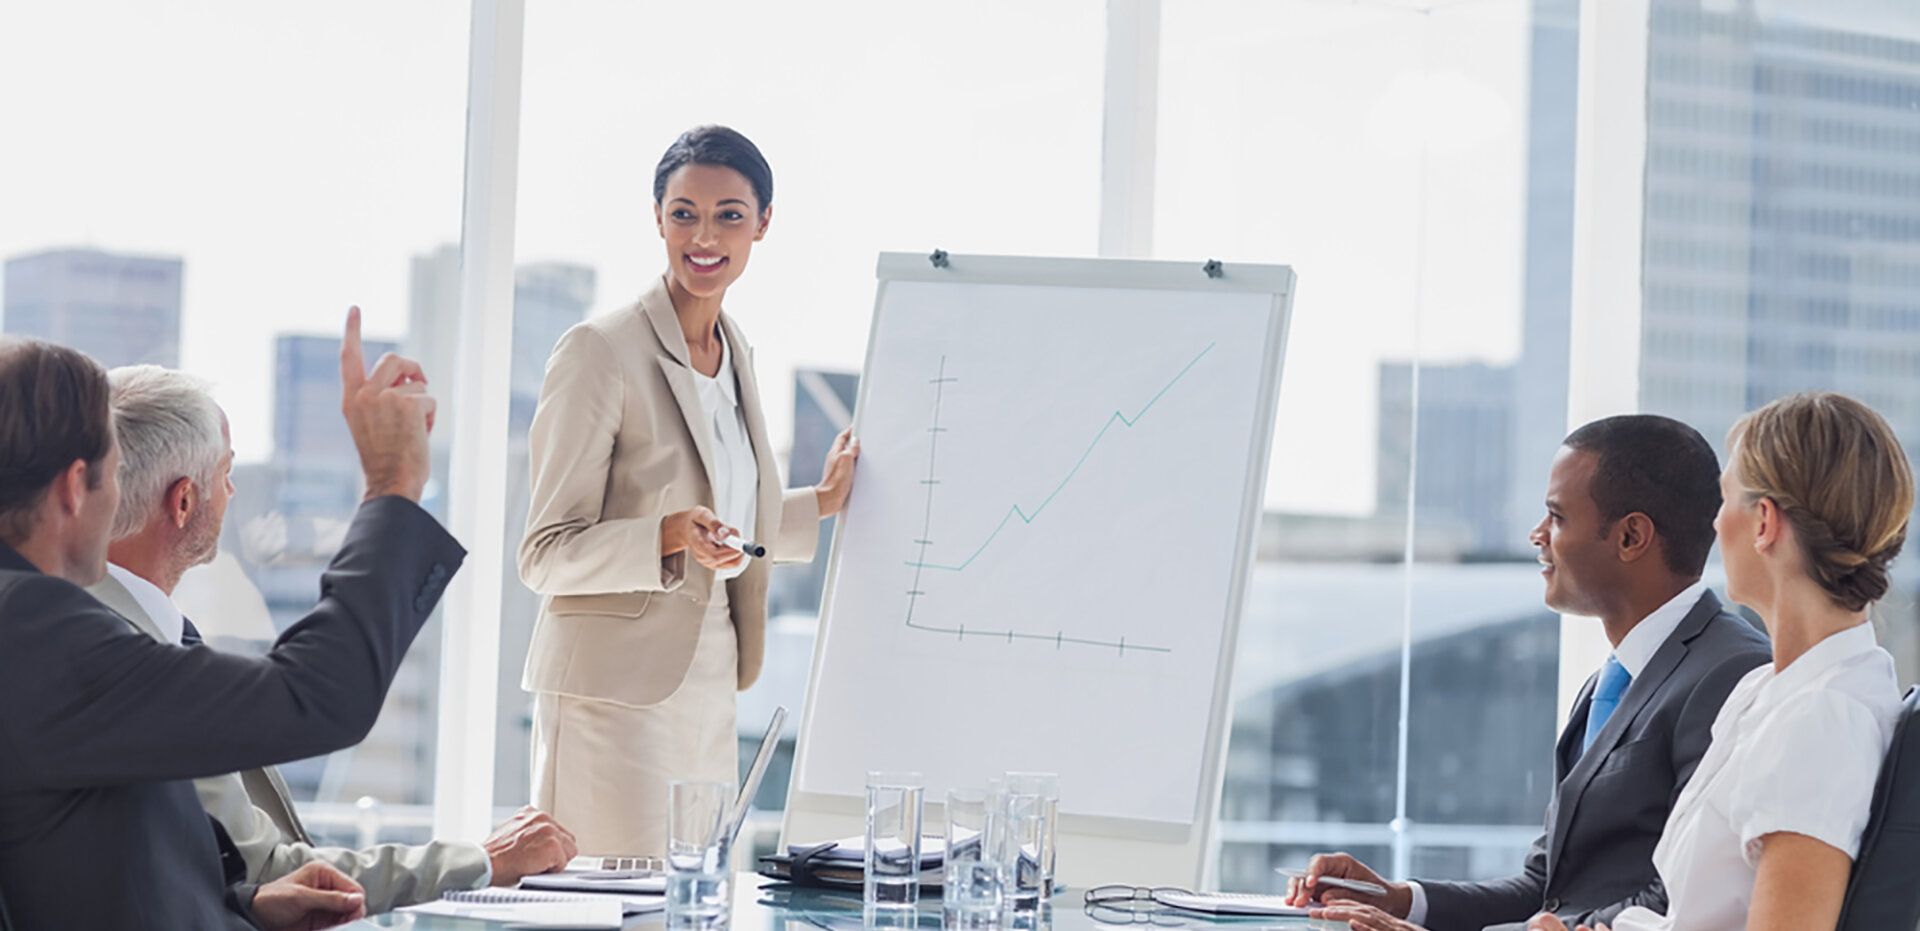 image of people in a boardroom, dressed in professional attire, looking at someone standing at the head of the table with a whiteboard drawing a graph.